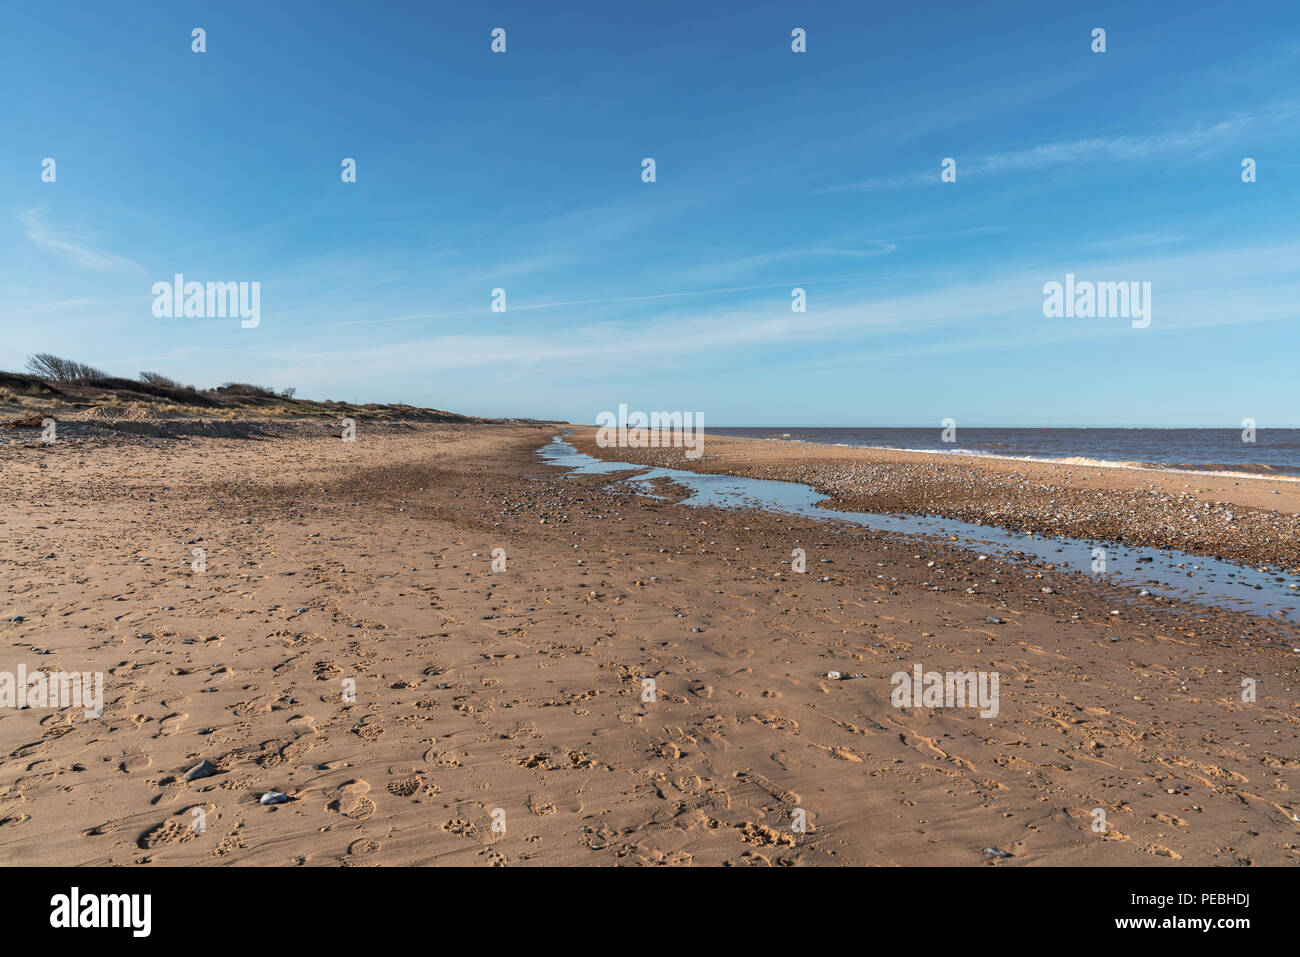 North sea coast in Caister-on-Sea, Norfolk, England, UK - the almost empty beach with someone walking in the backgorund Stock Photo